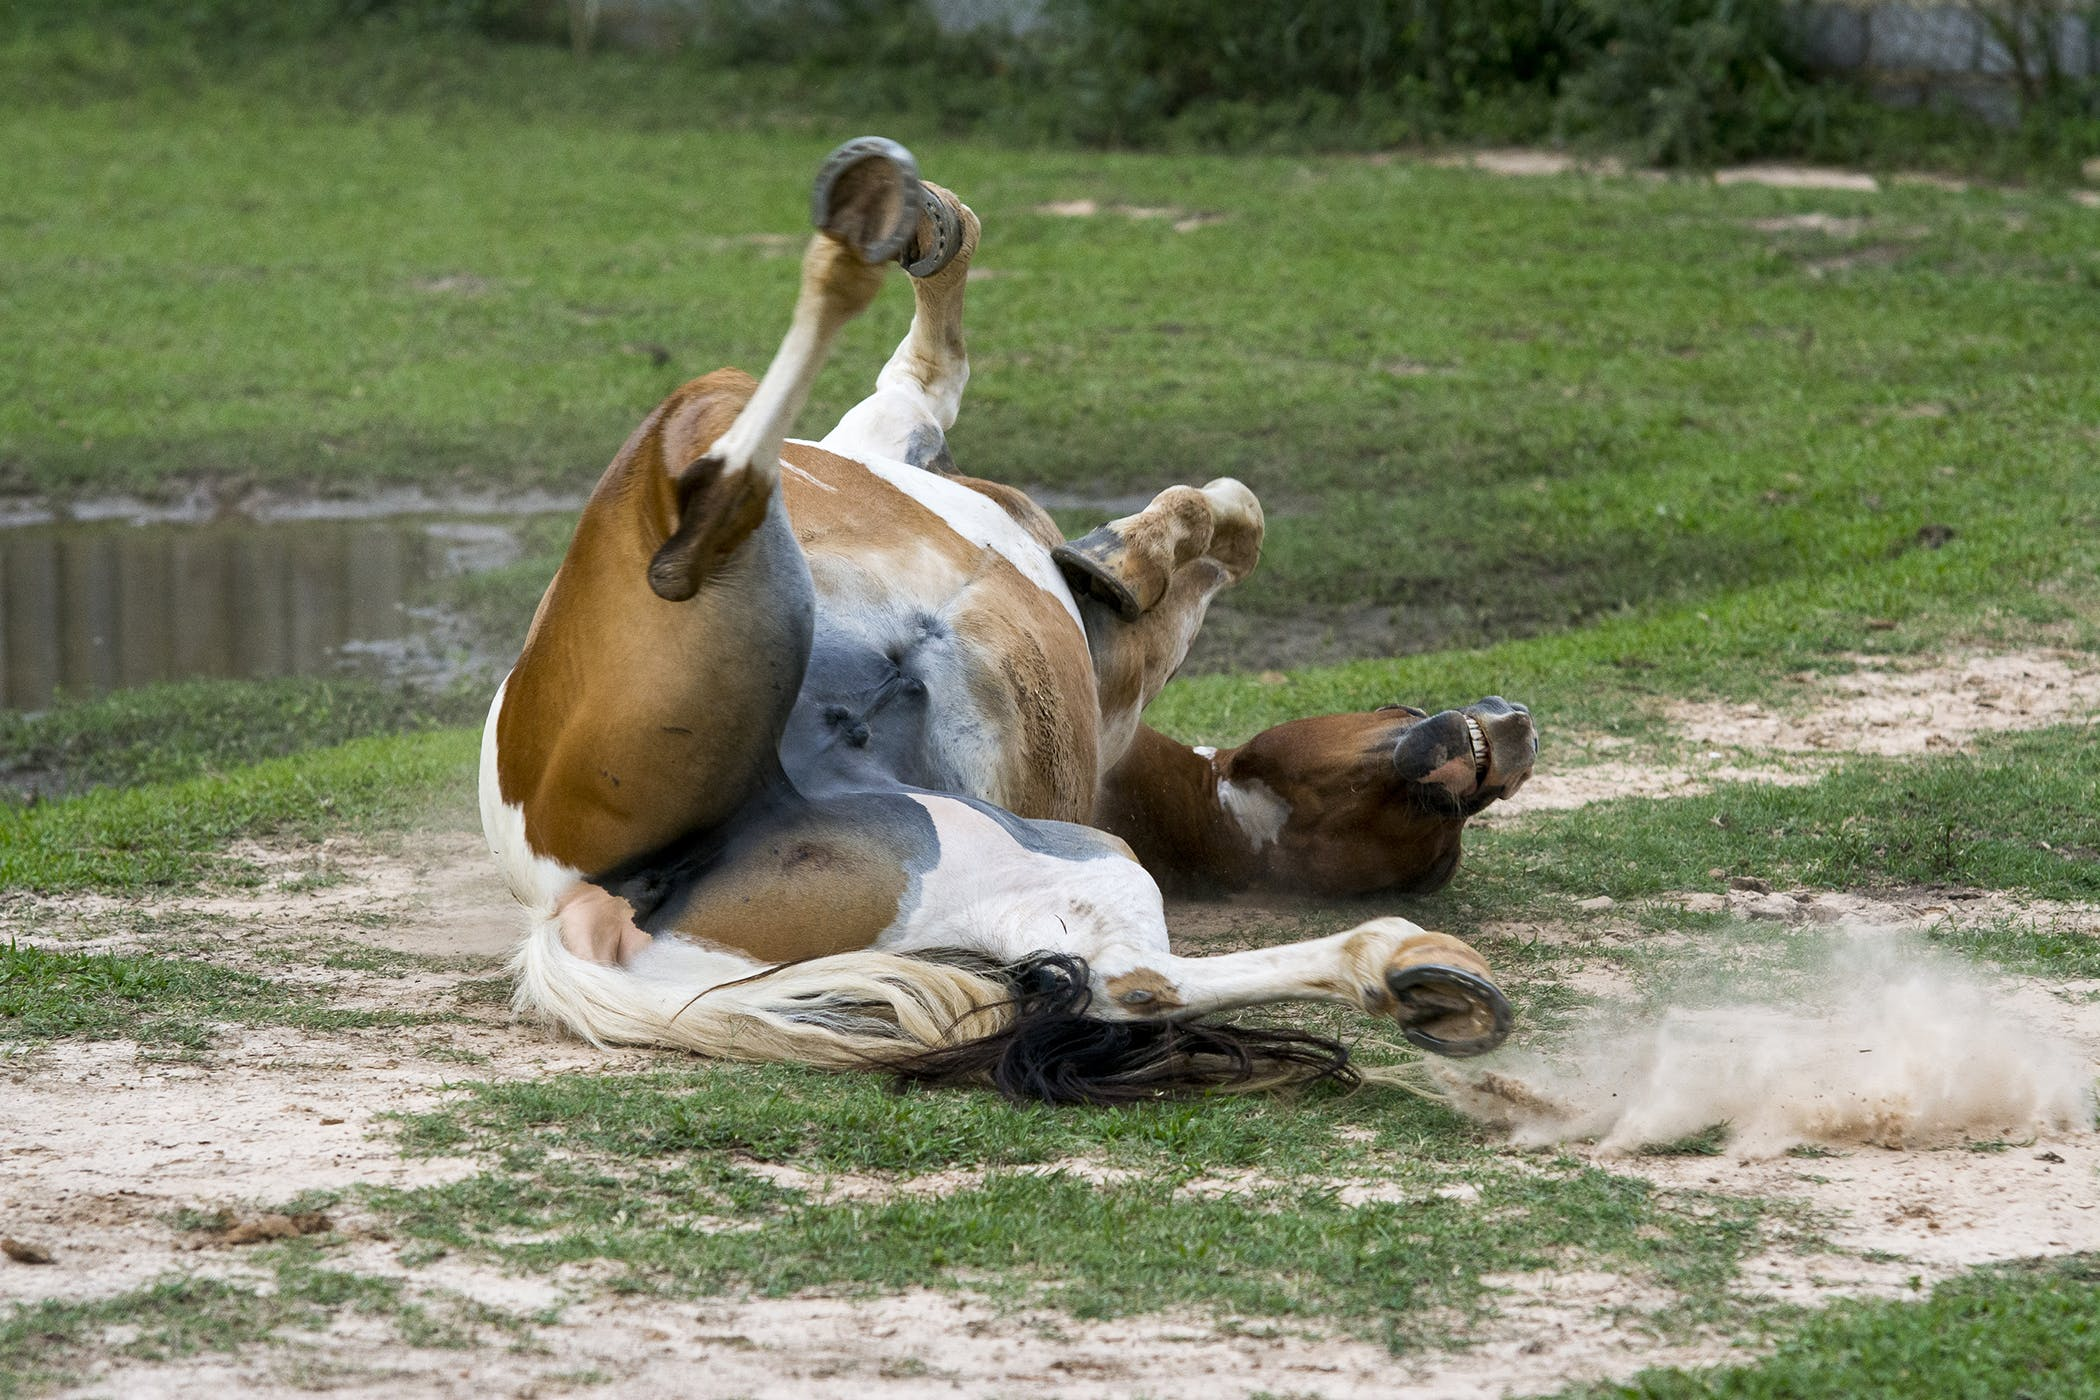 Potomac Horse Fever in Horses - Symptoms, Causes, Diagnosis